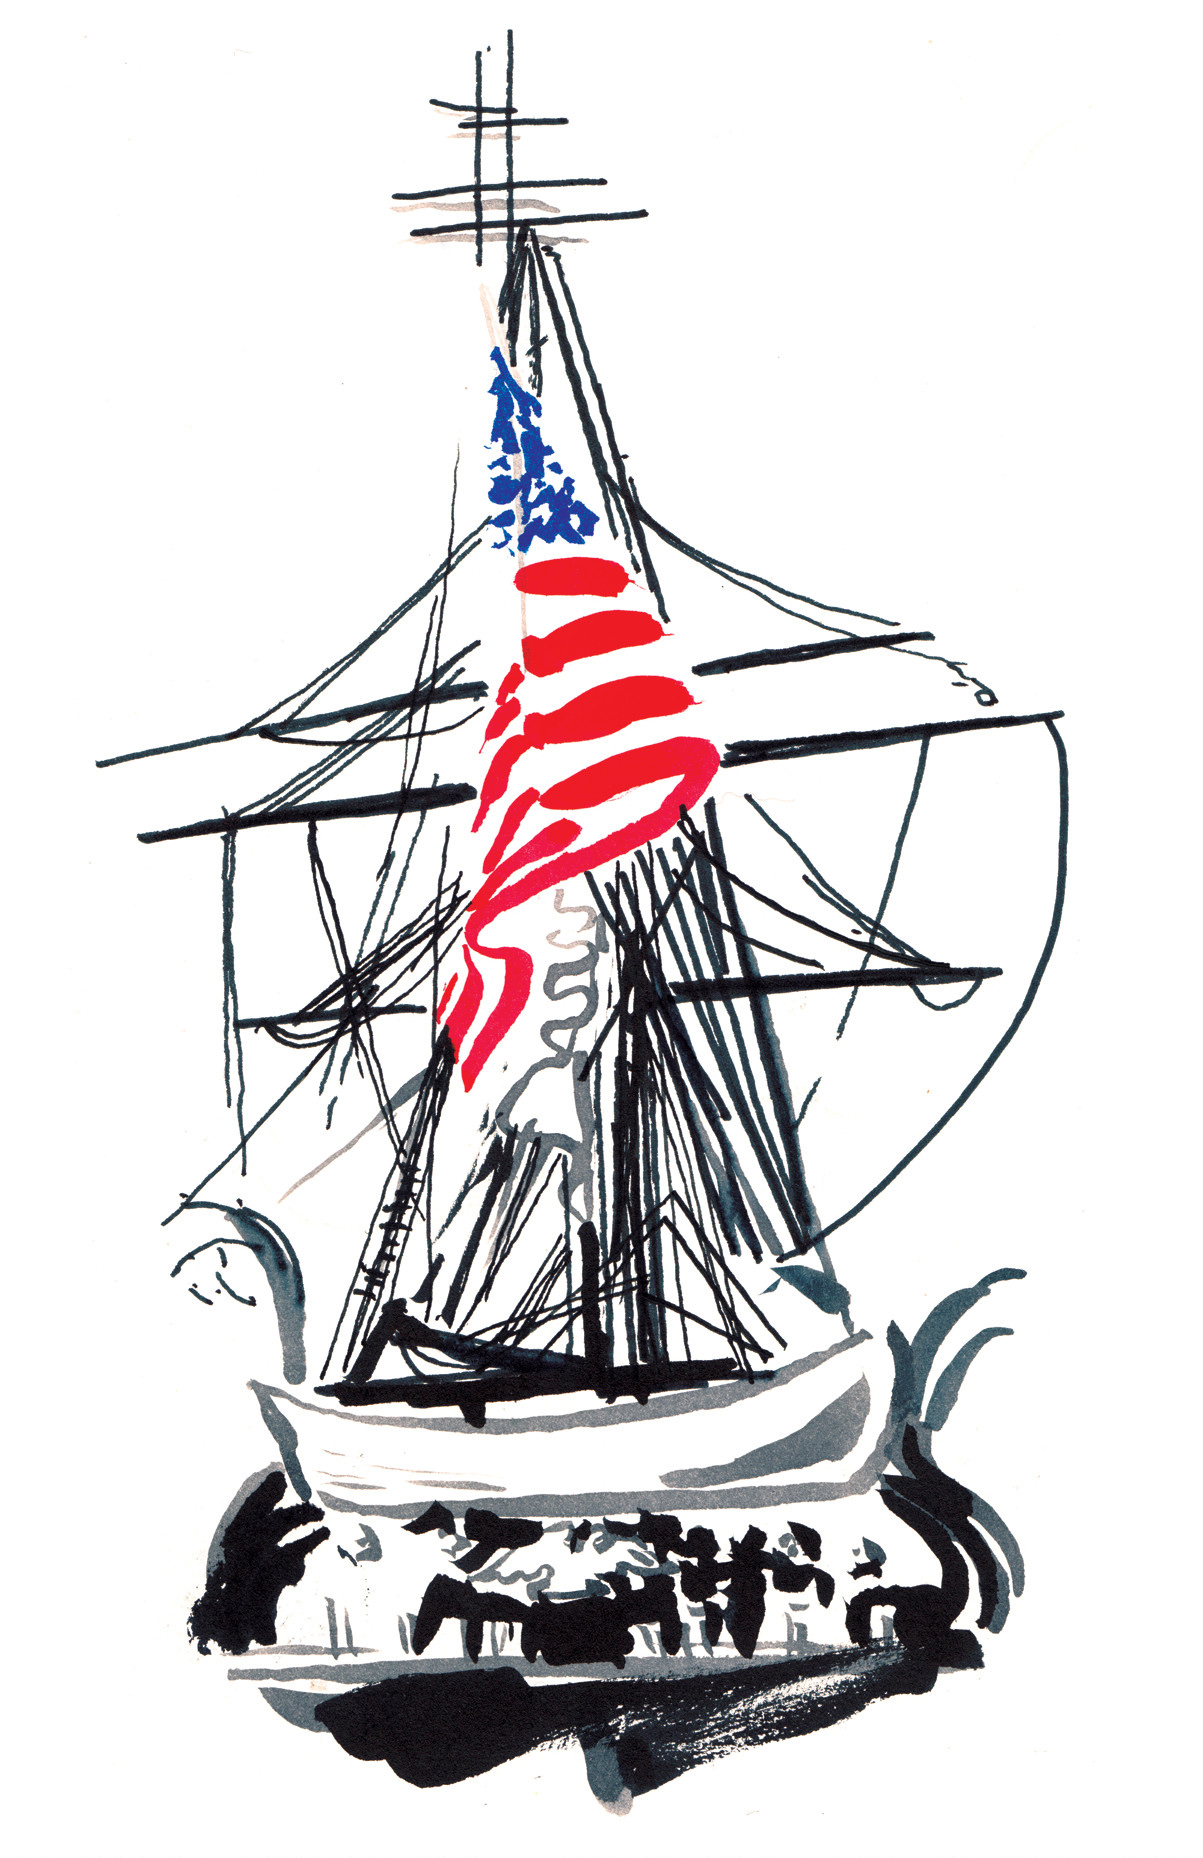 Behind the U.S.S. Constitution